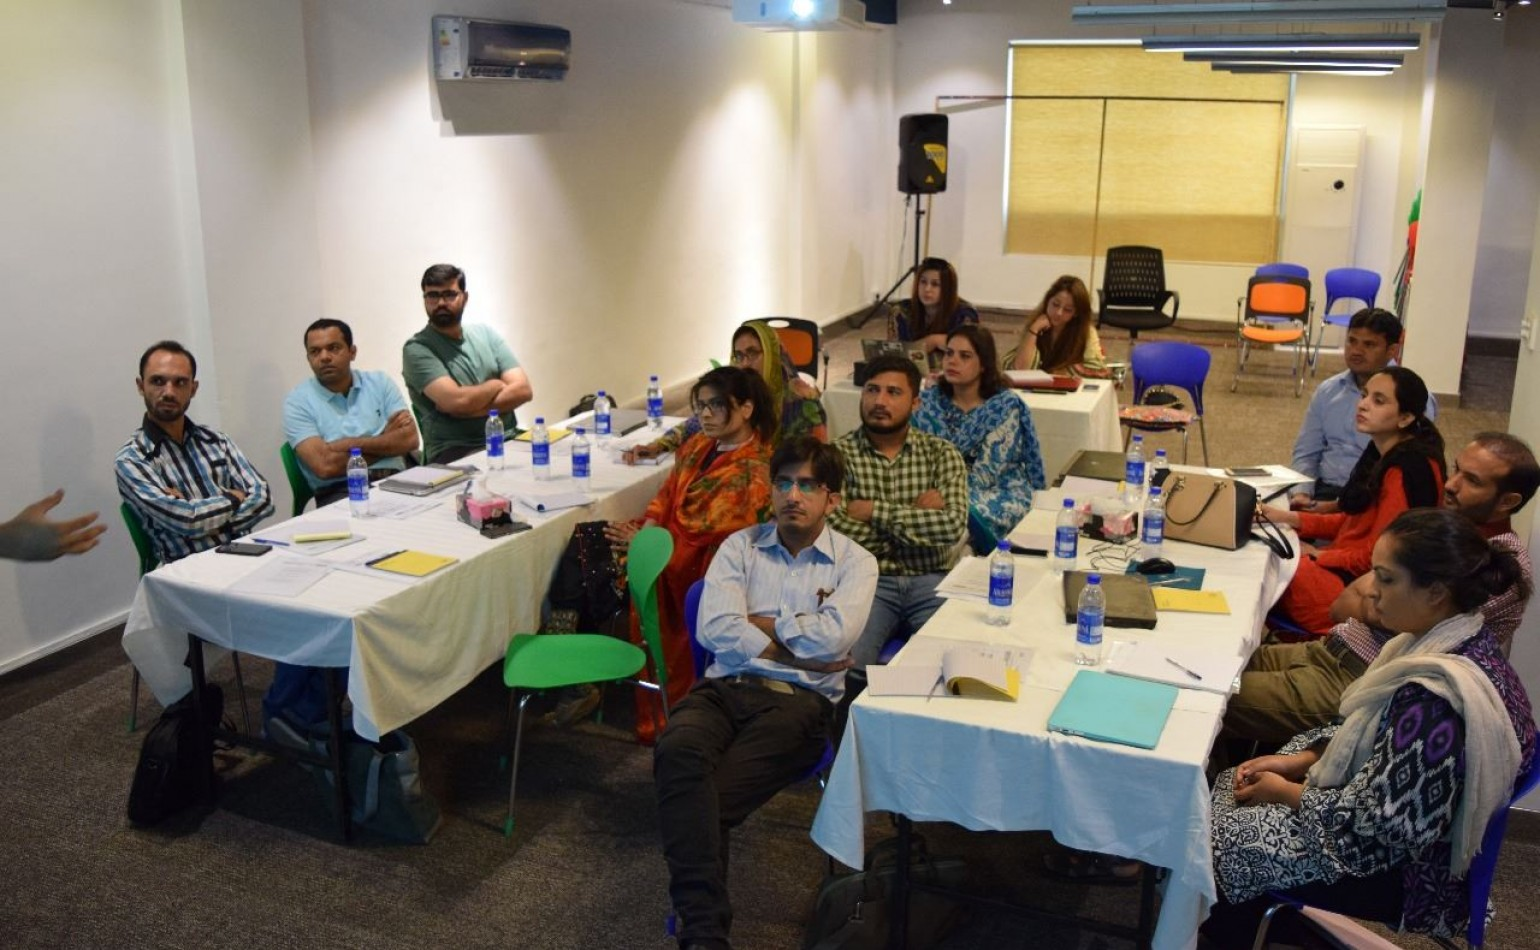 #MediaForTransparency: Media Matters for Democracy successfully concludes it's data journalism training program reaching out to 45 investigative journalists in four cities